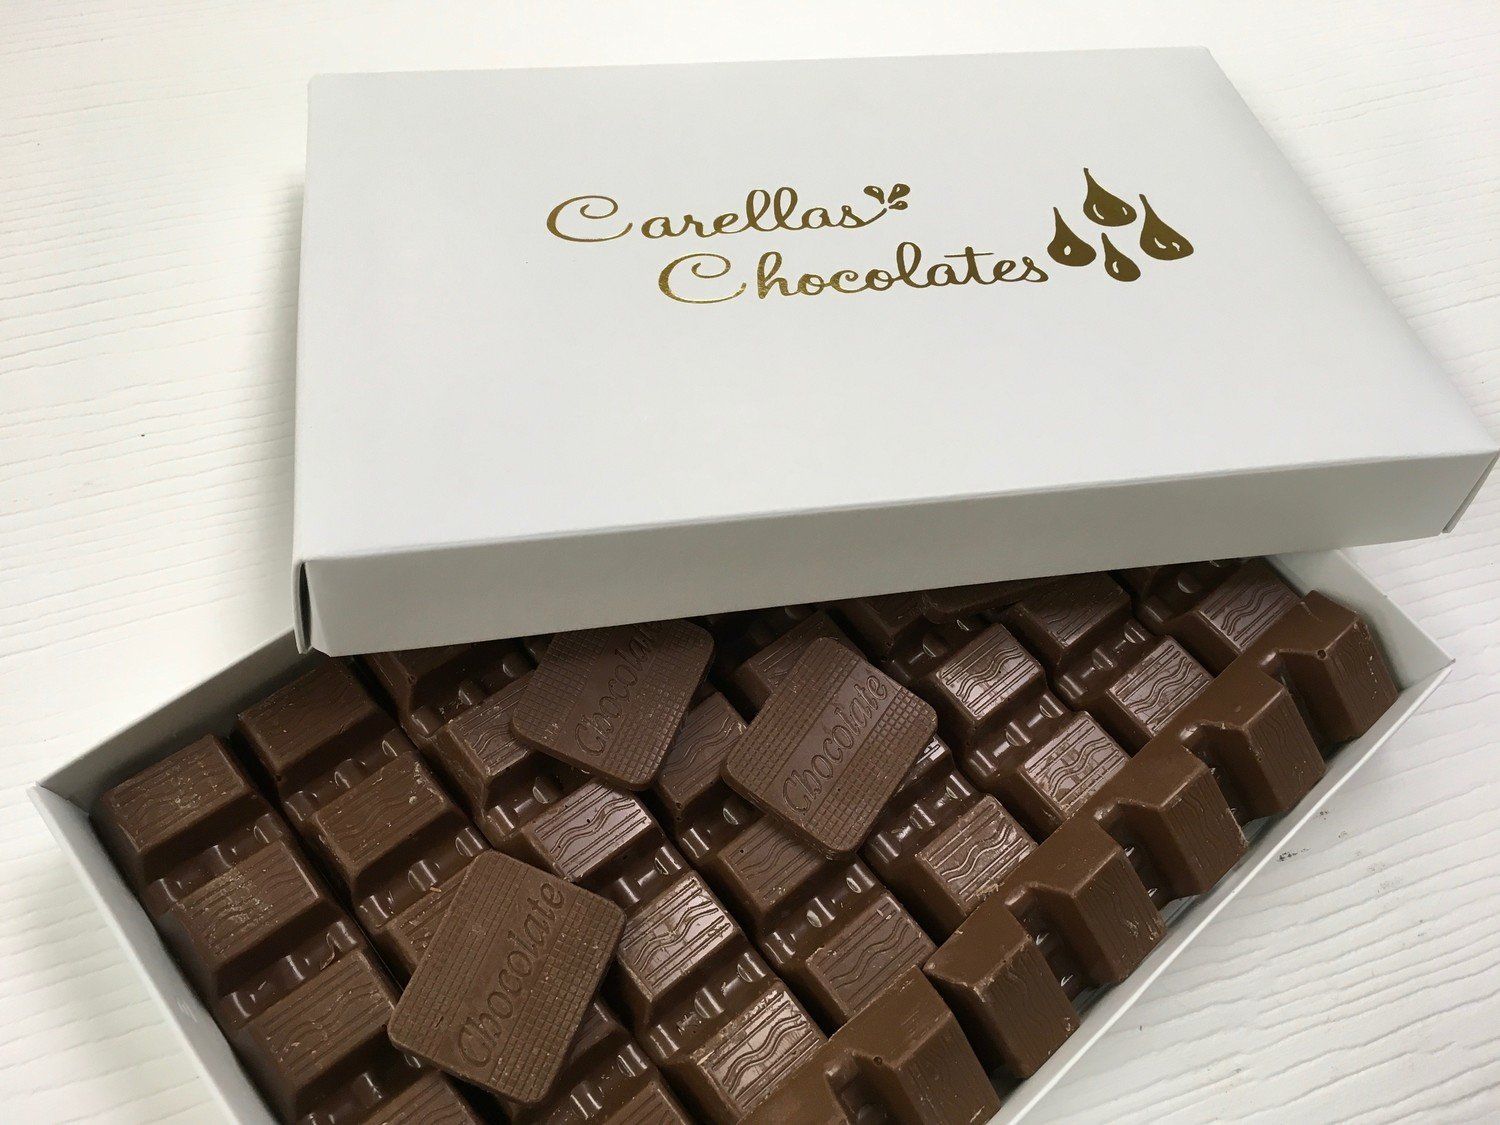 Carella's Chocolates Solid Chocolates Available Milk or Dark.  Peanut and Gluten Free.